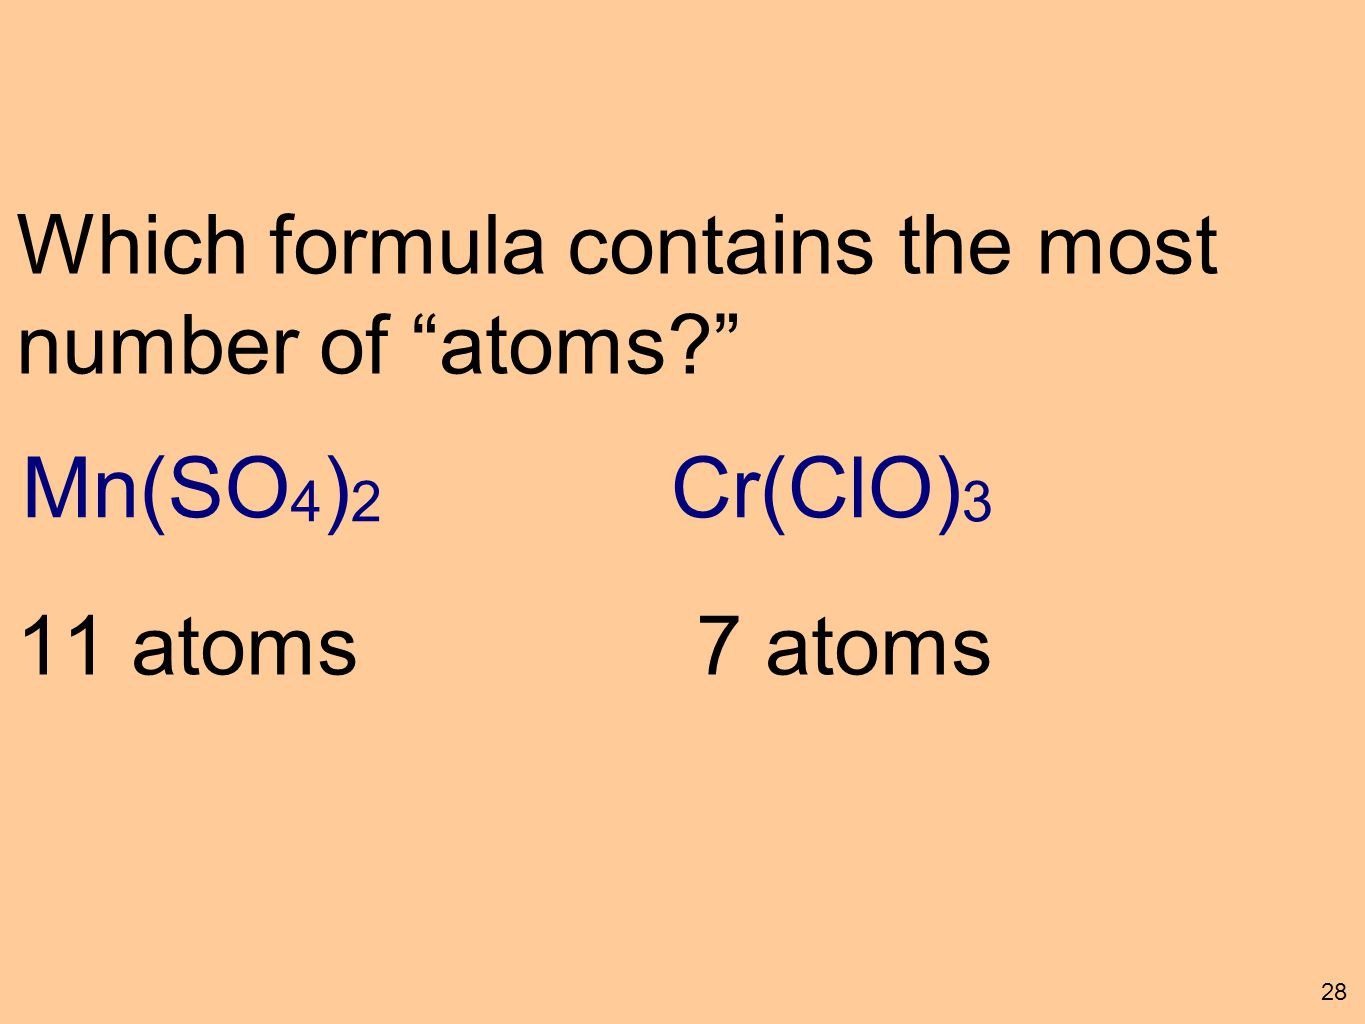 Ionic compounds using polyatomic ions ppt download mnso42 crclo3 which formula contains the most number gamestrikefo Gallery